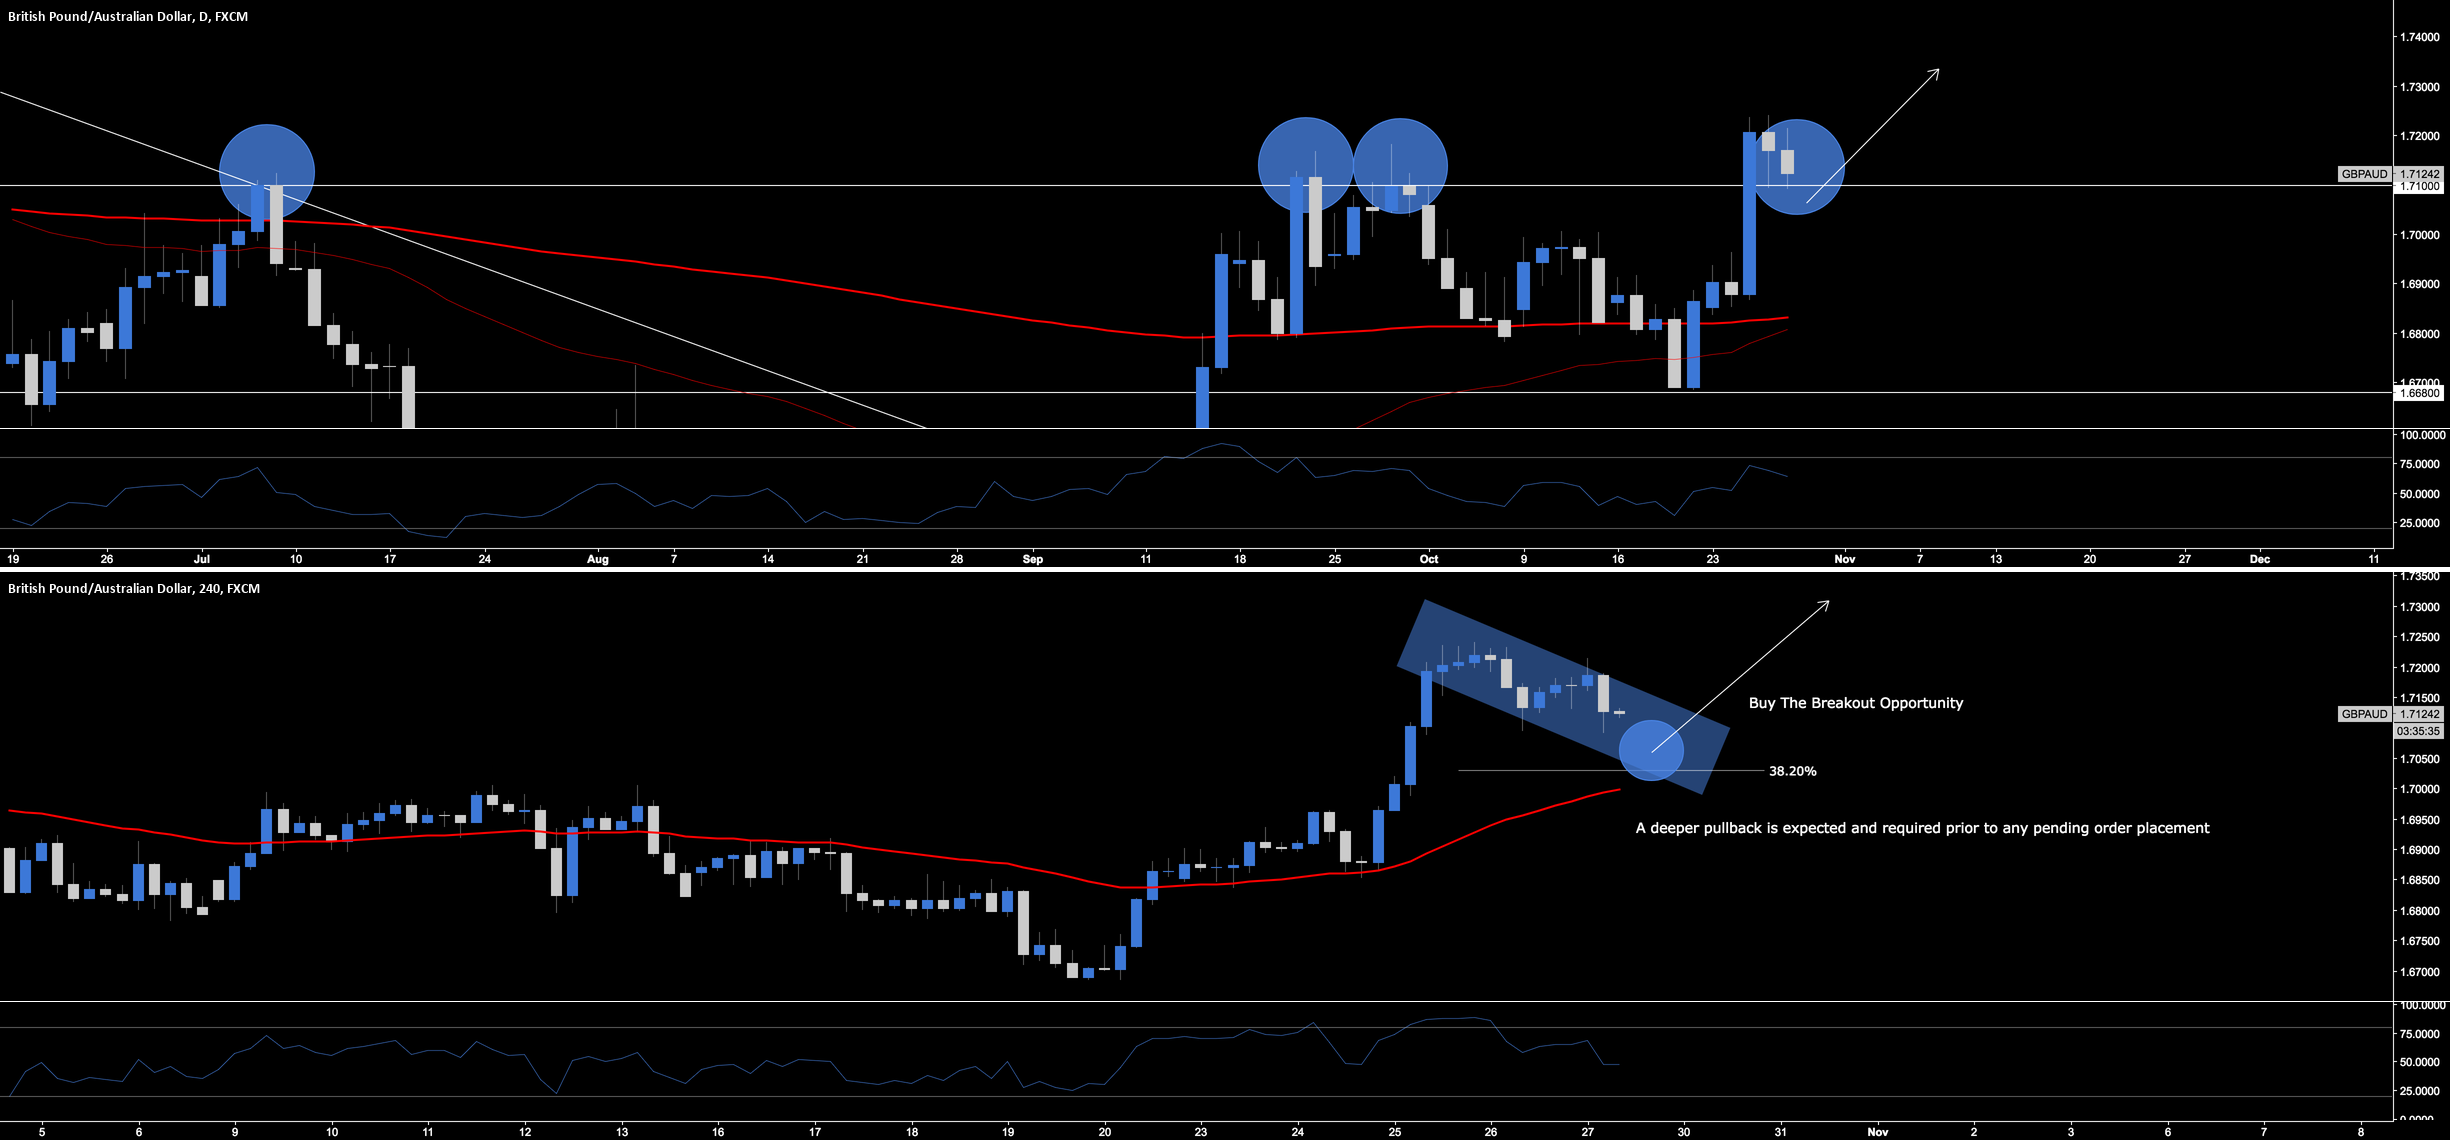 GBP.AUD - Break & Retest Long Opportunity